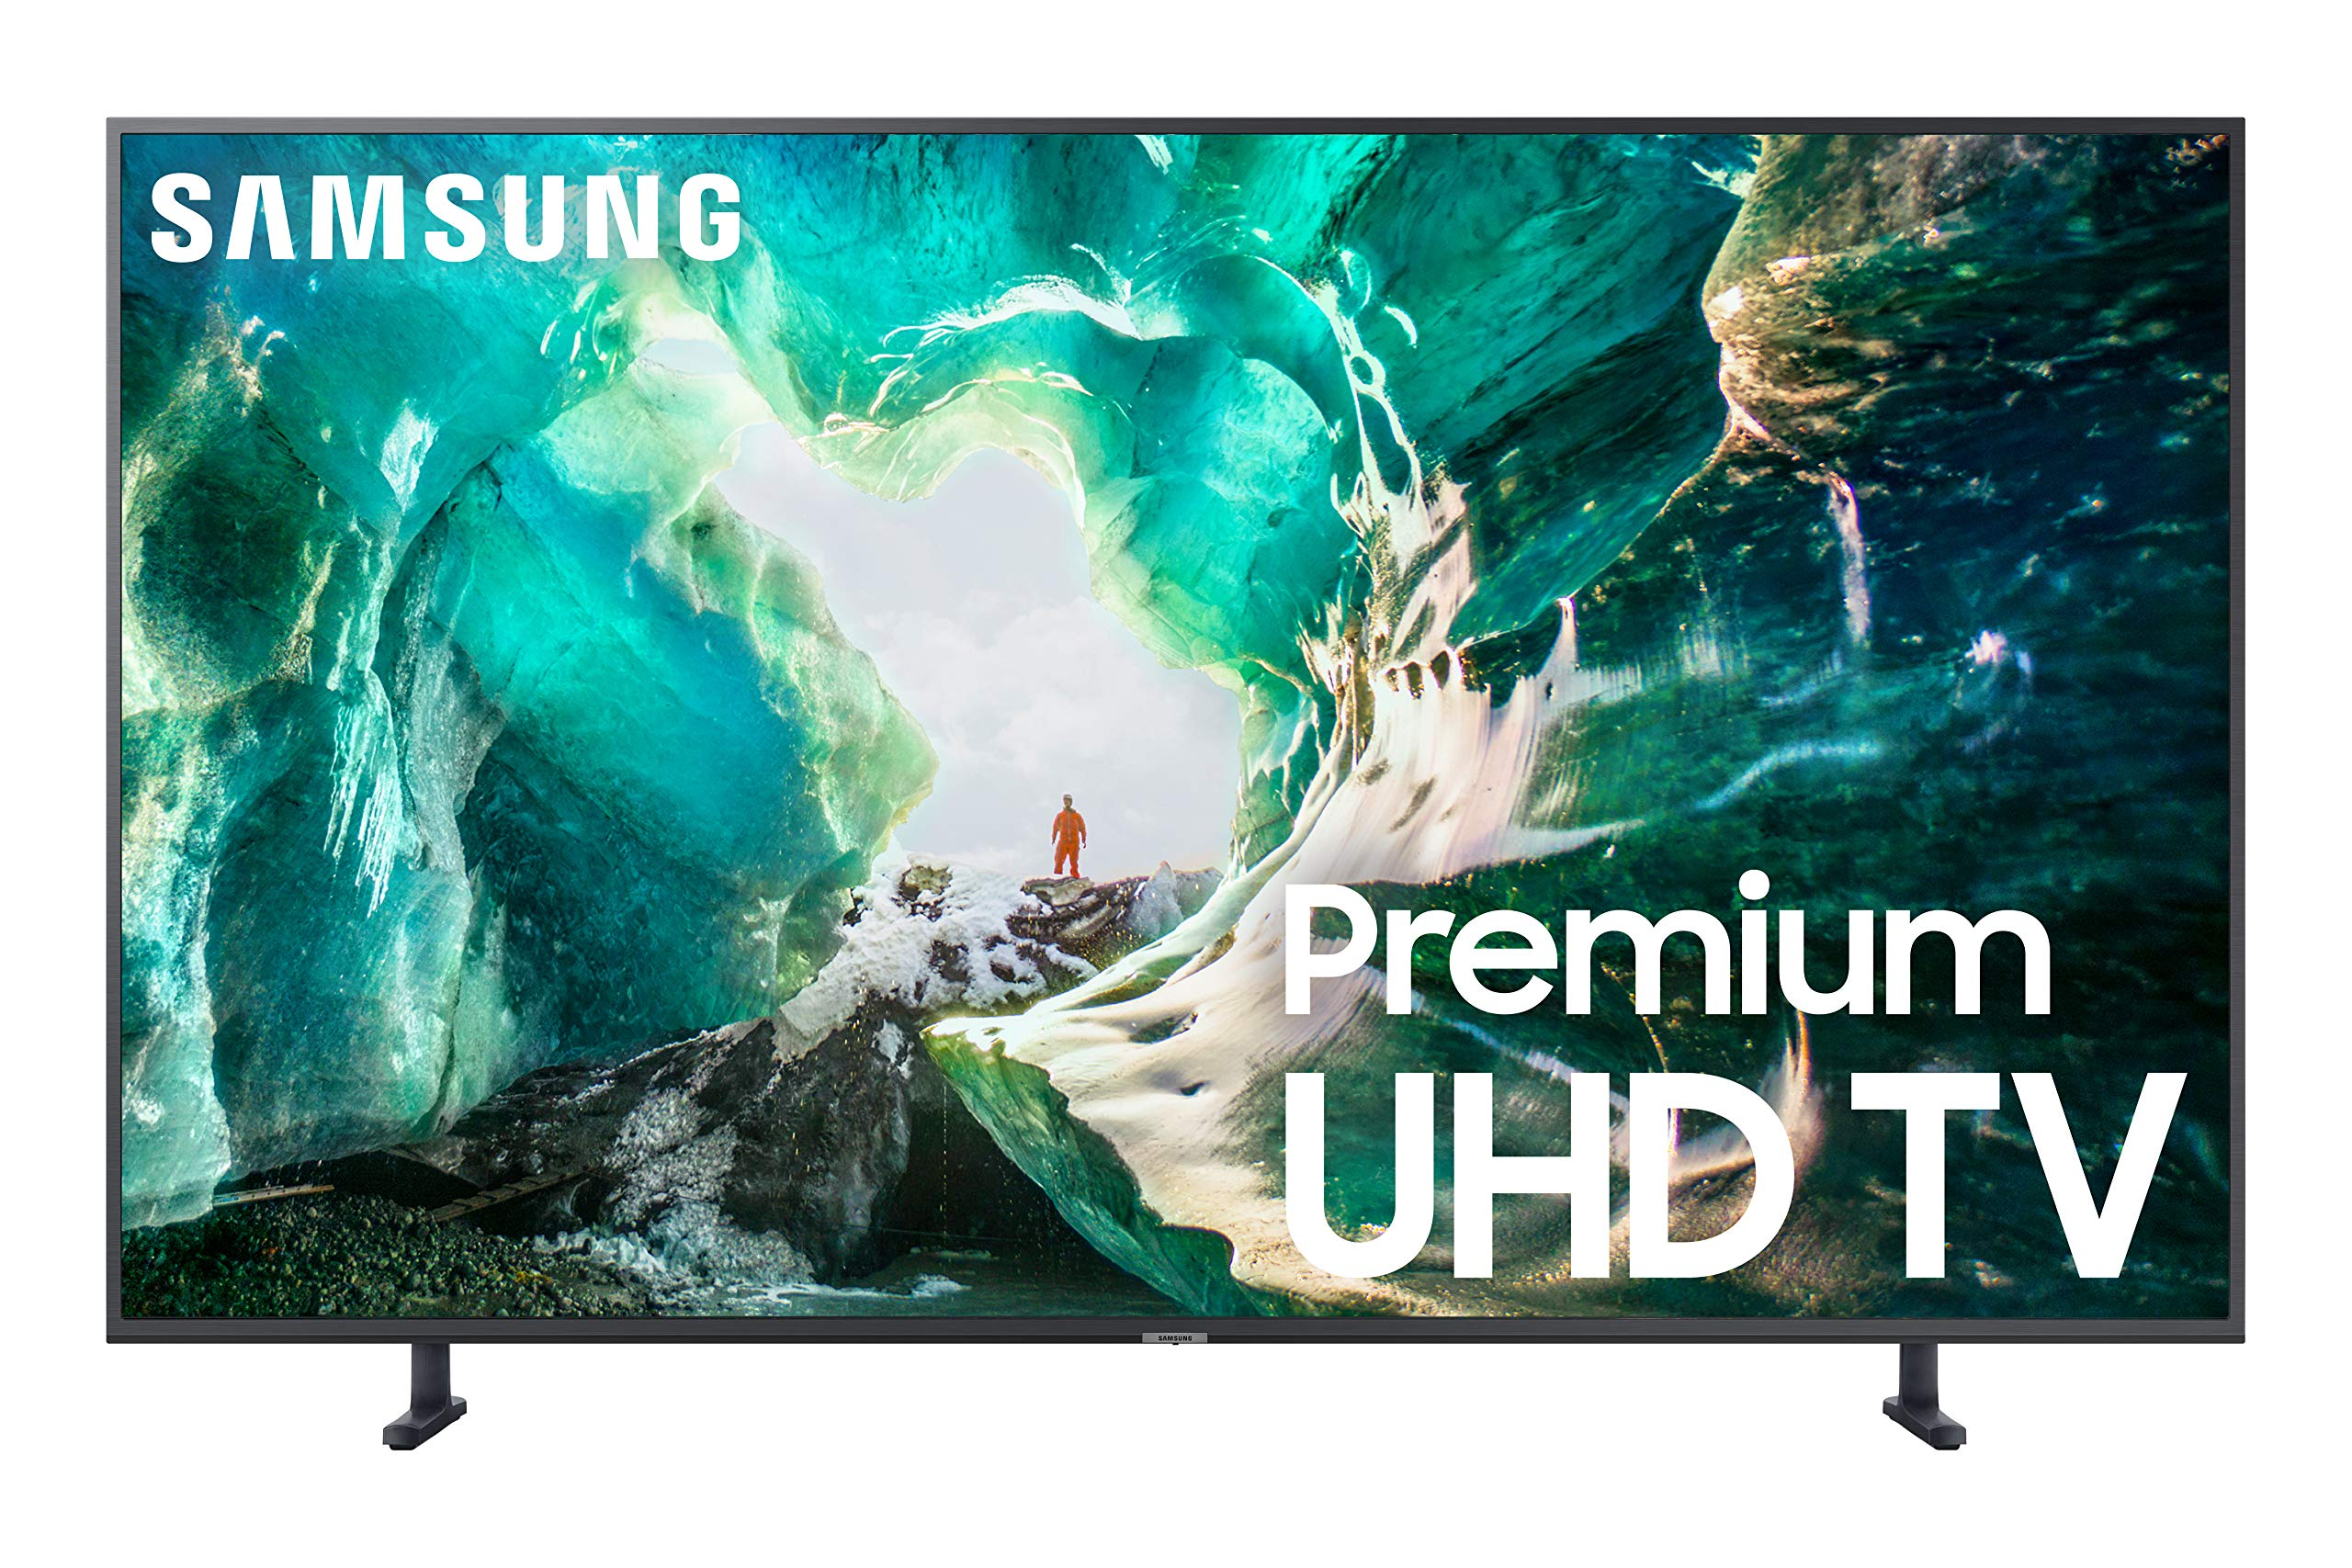 Samsung Flat 55-Inch 4K 8 Series UHD Smart TV with HDR and Alexa Compatibility - 2019 Model